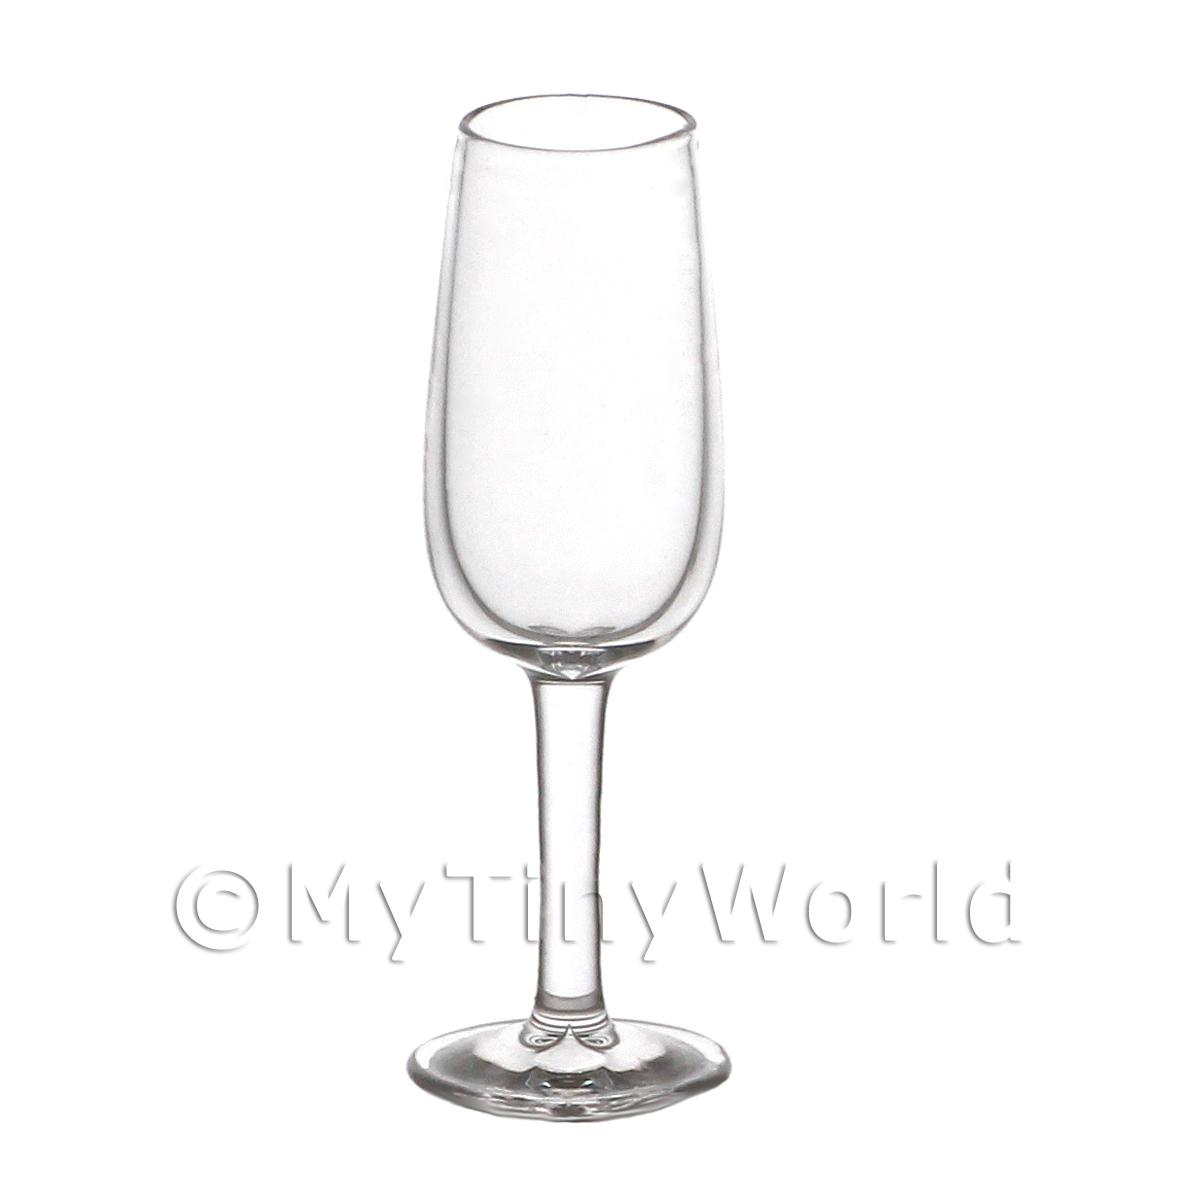 Dolls House Miniature Handmade Narrow Necked Clear Wine Glass